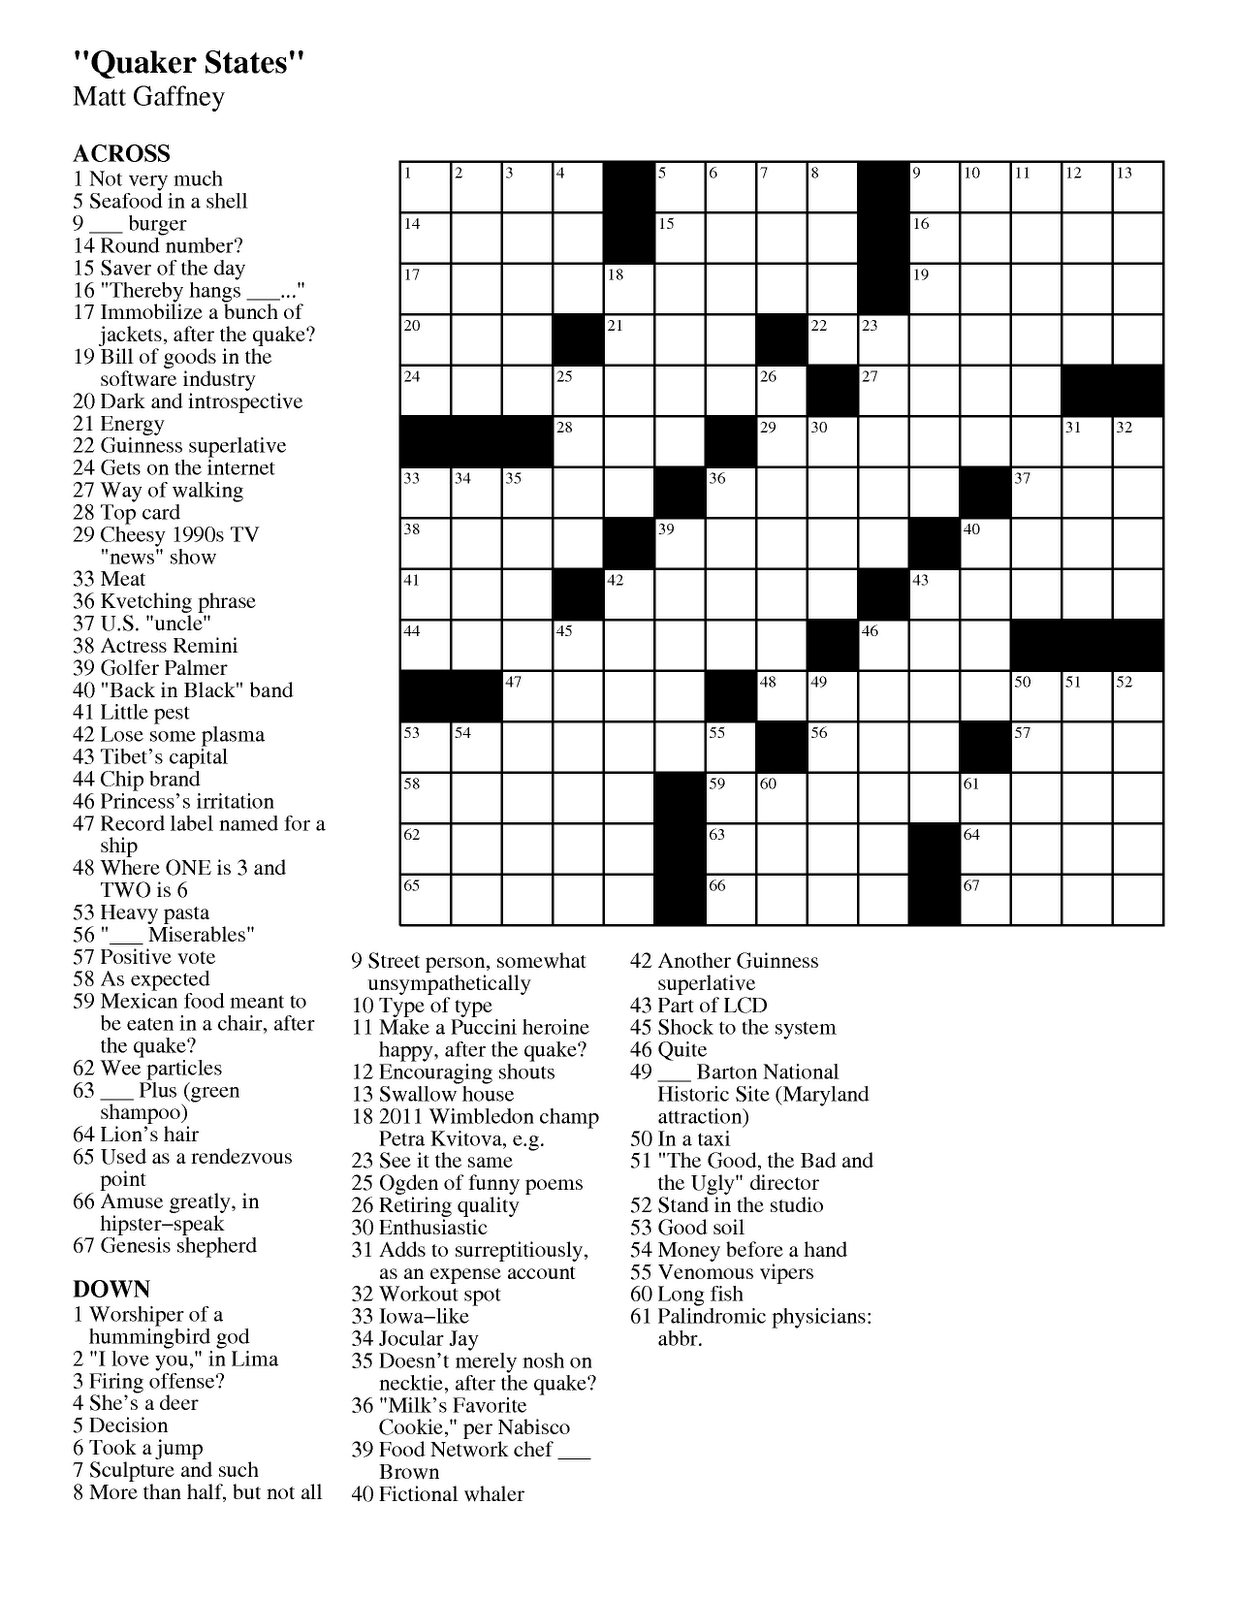 photo relating to Printable Crossword Puzzles Pdf named Absolutely free Printable Hefty Print Crossword Puzzles M3U8 - Substantial